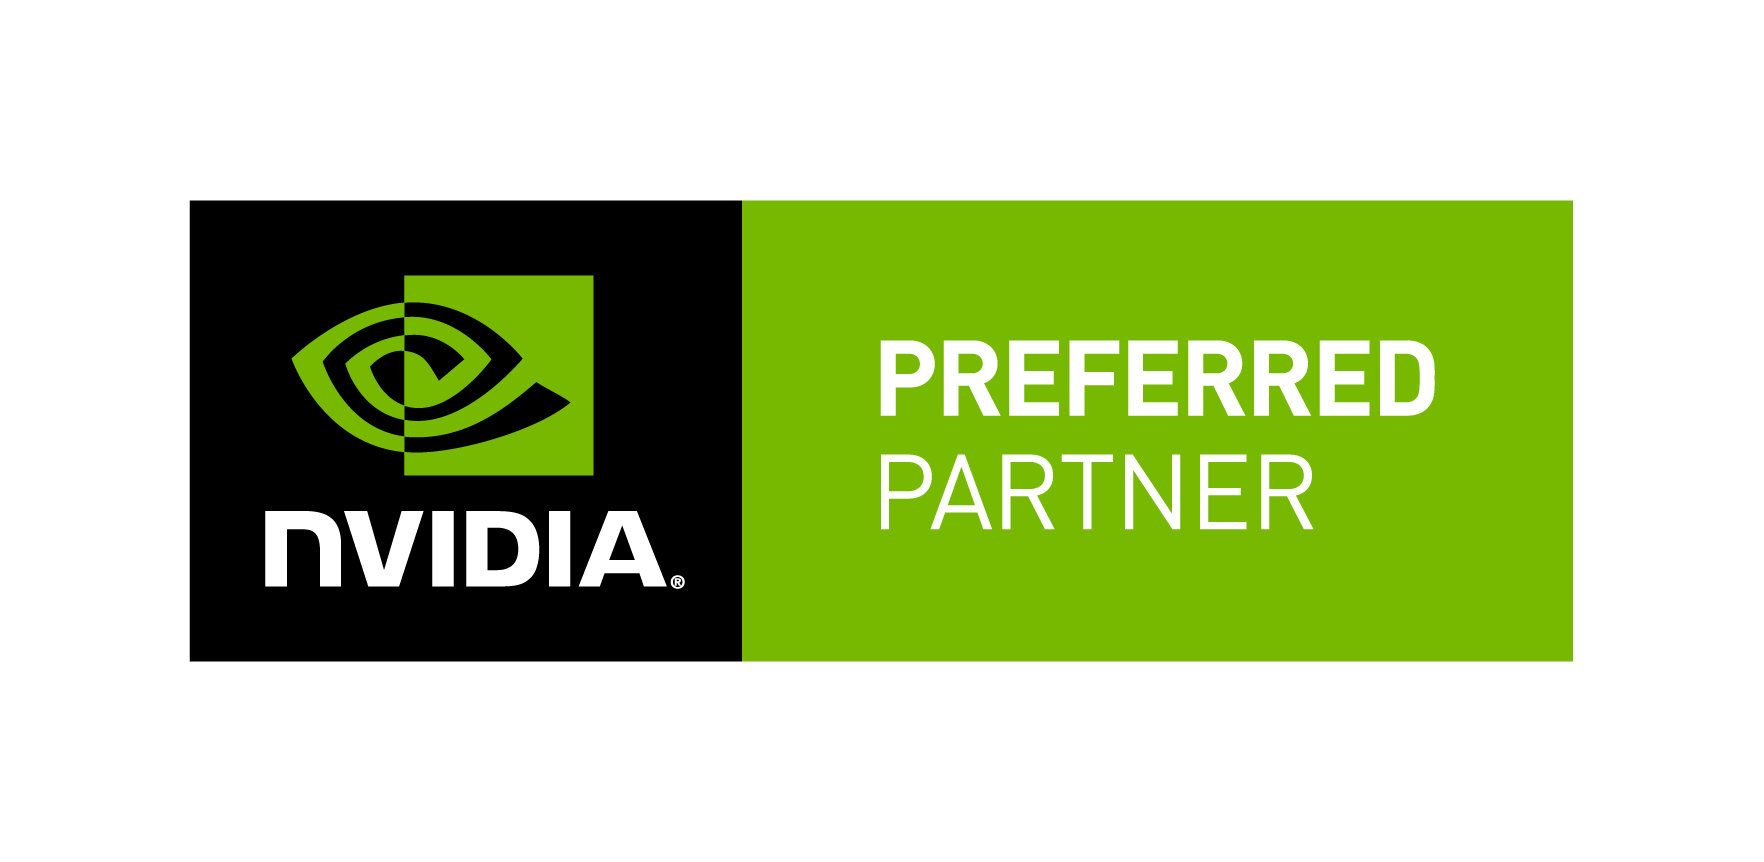 NVIDIA_PreferredPartner_Conoa